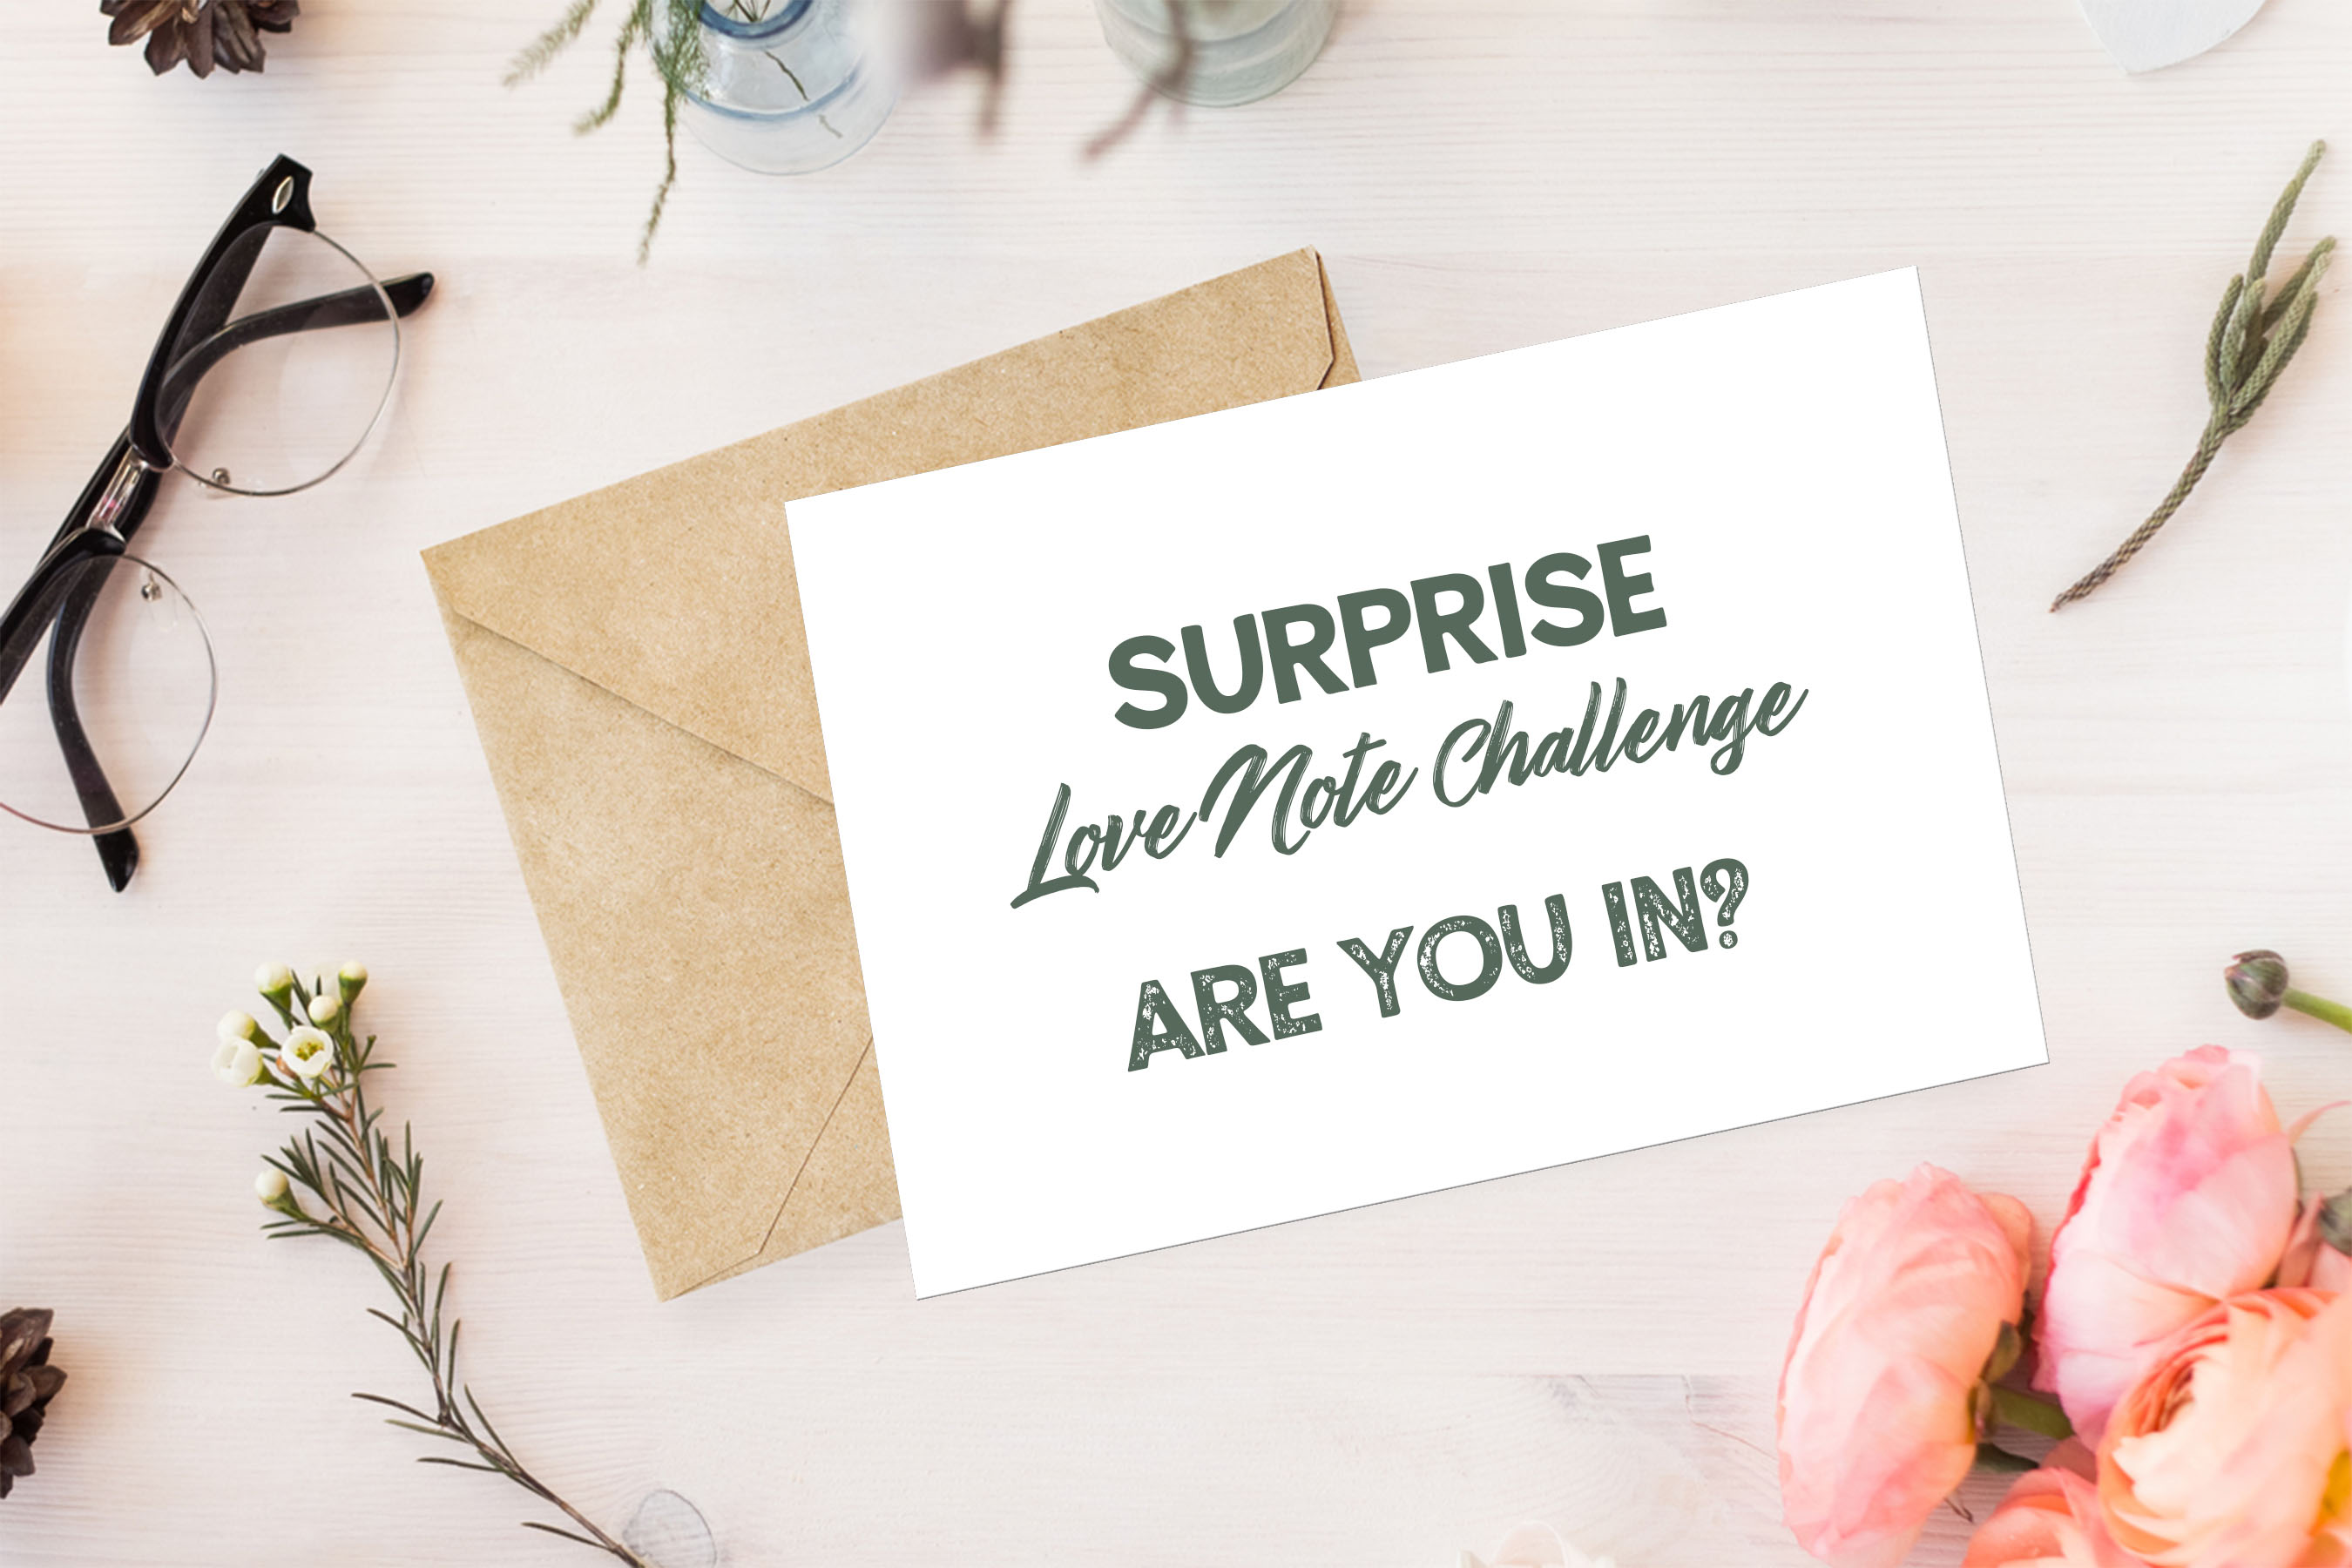 Surprise Love Note Challenge: Six Love Notes in Six Weeks